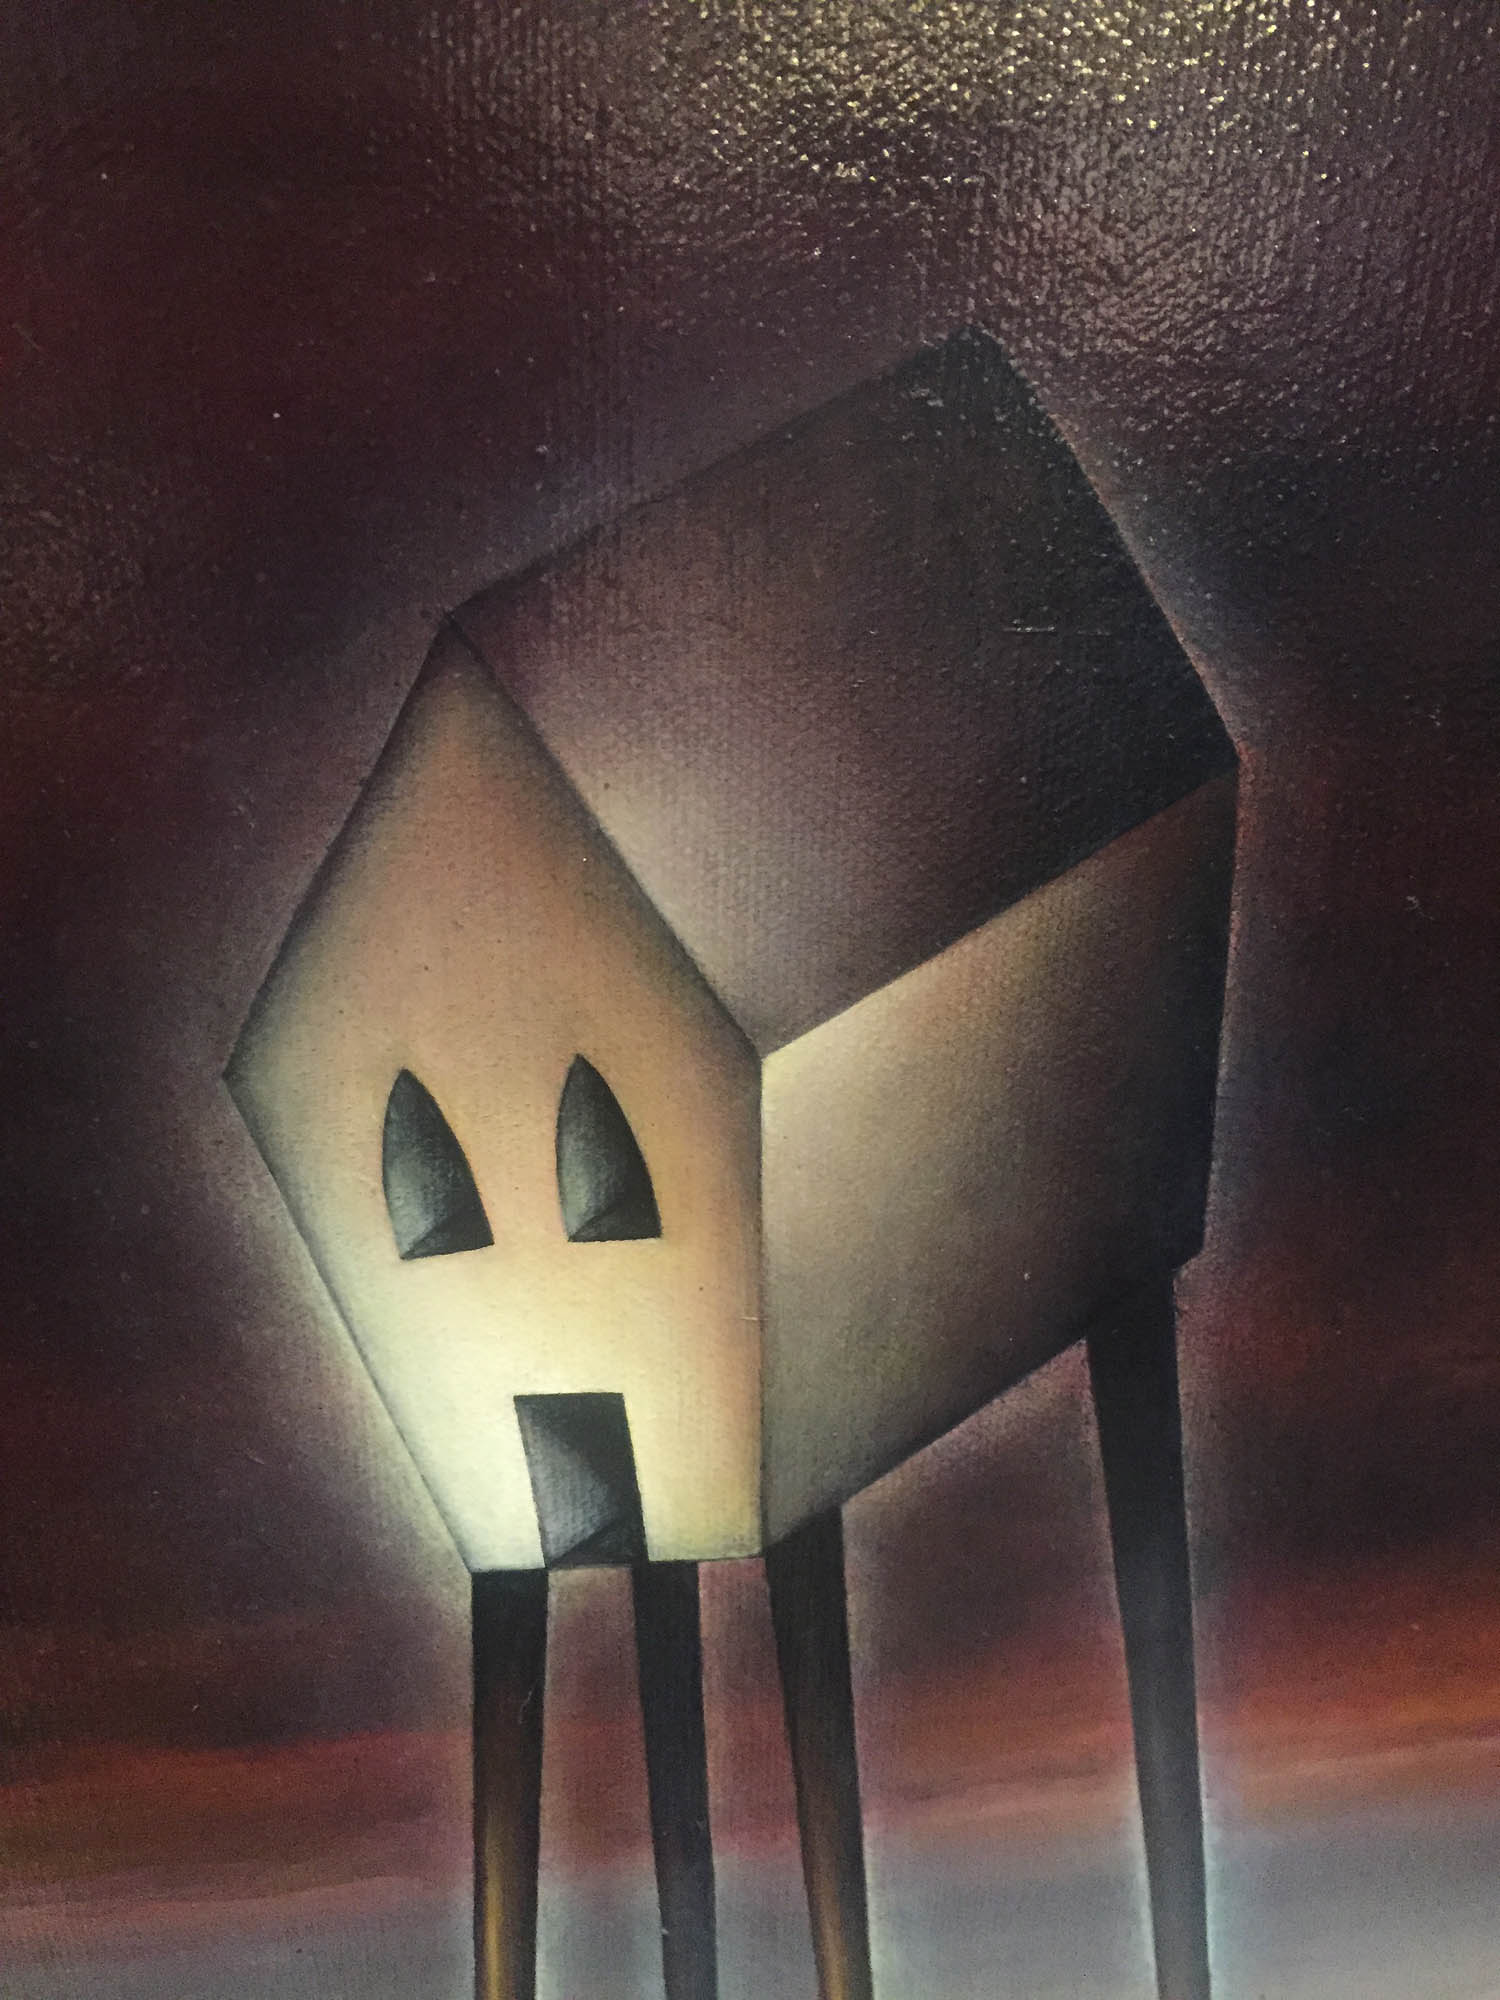 Home is more than a House by Peter Smith, Landscape | Love | Romance